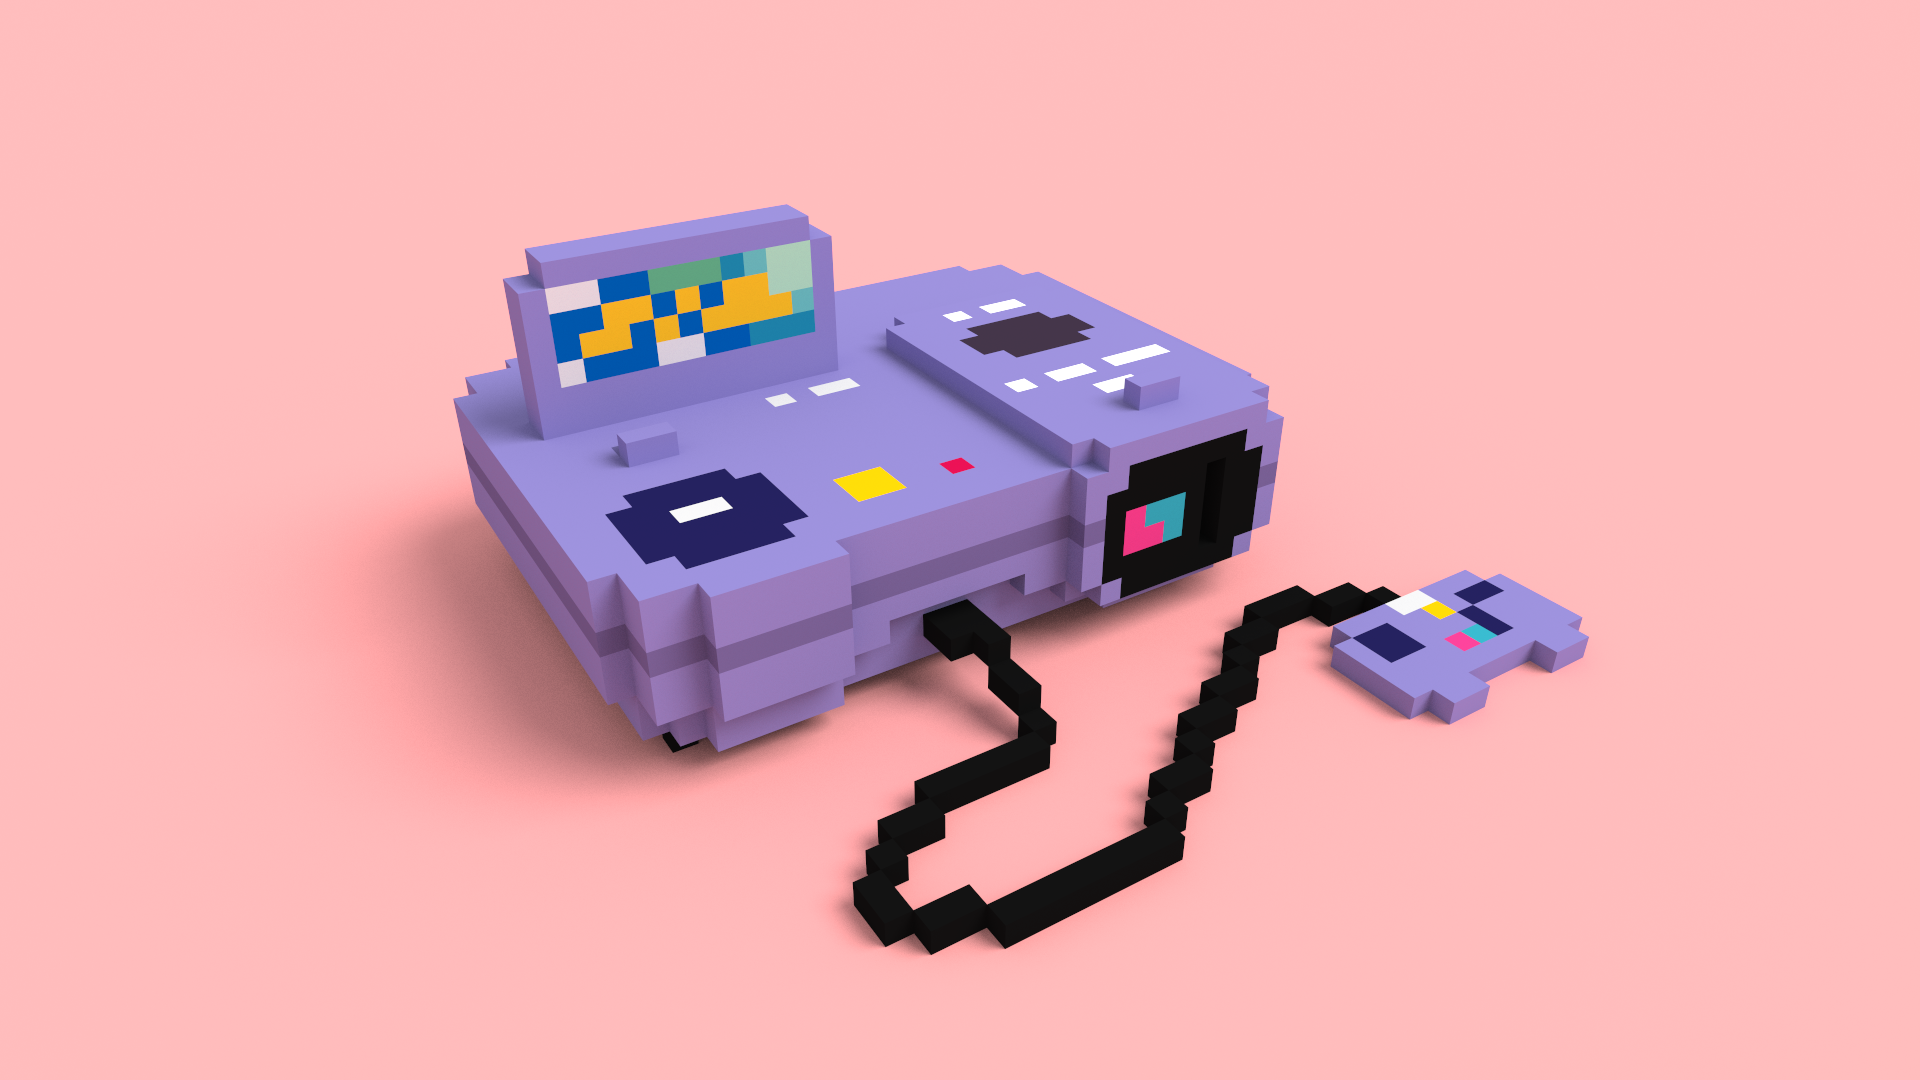 Voxel Casio Loopy